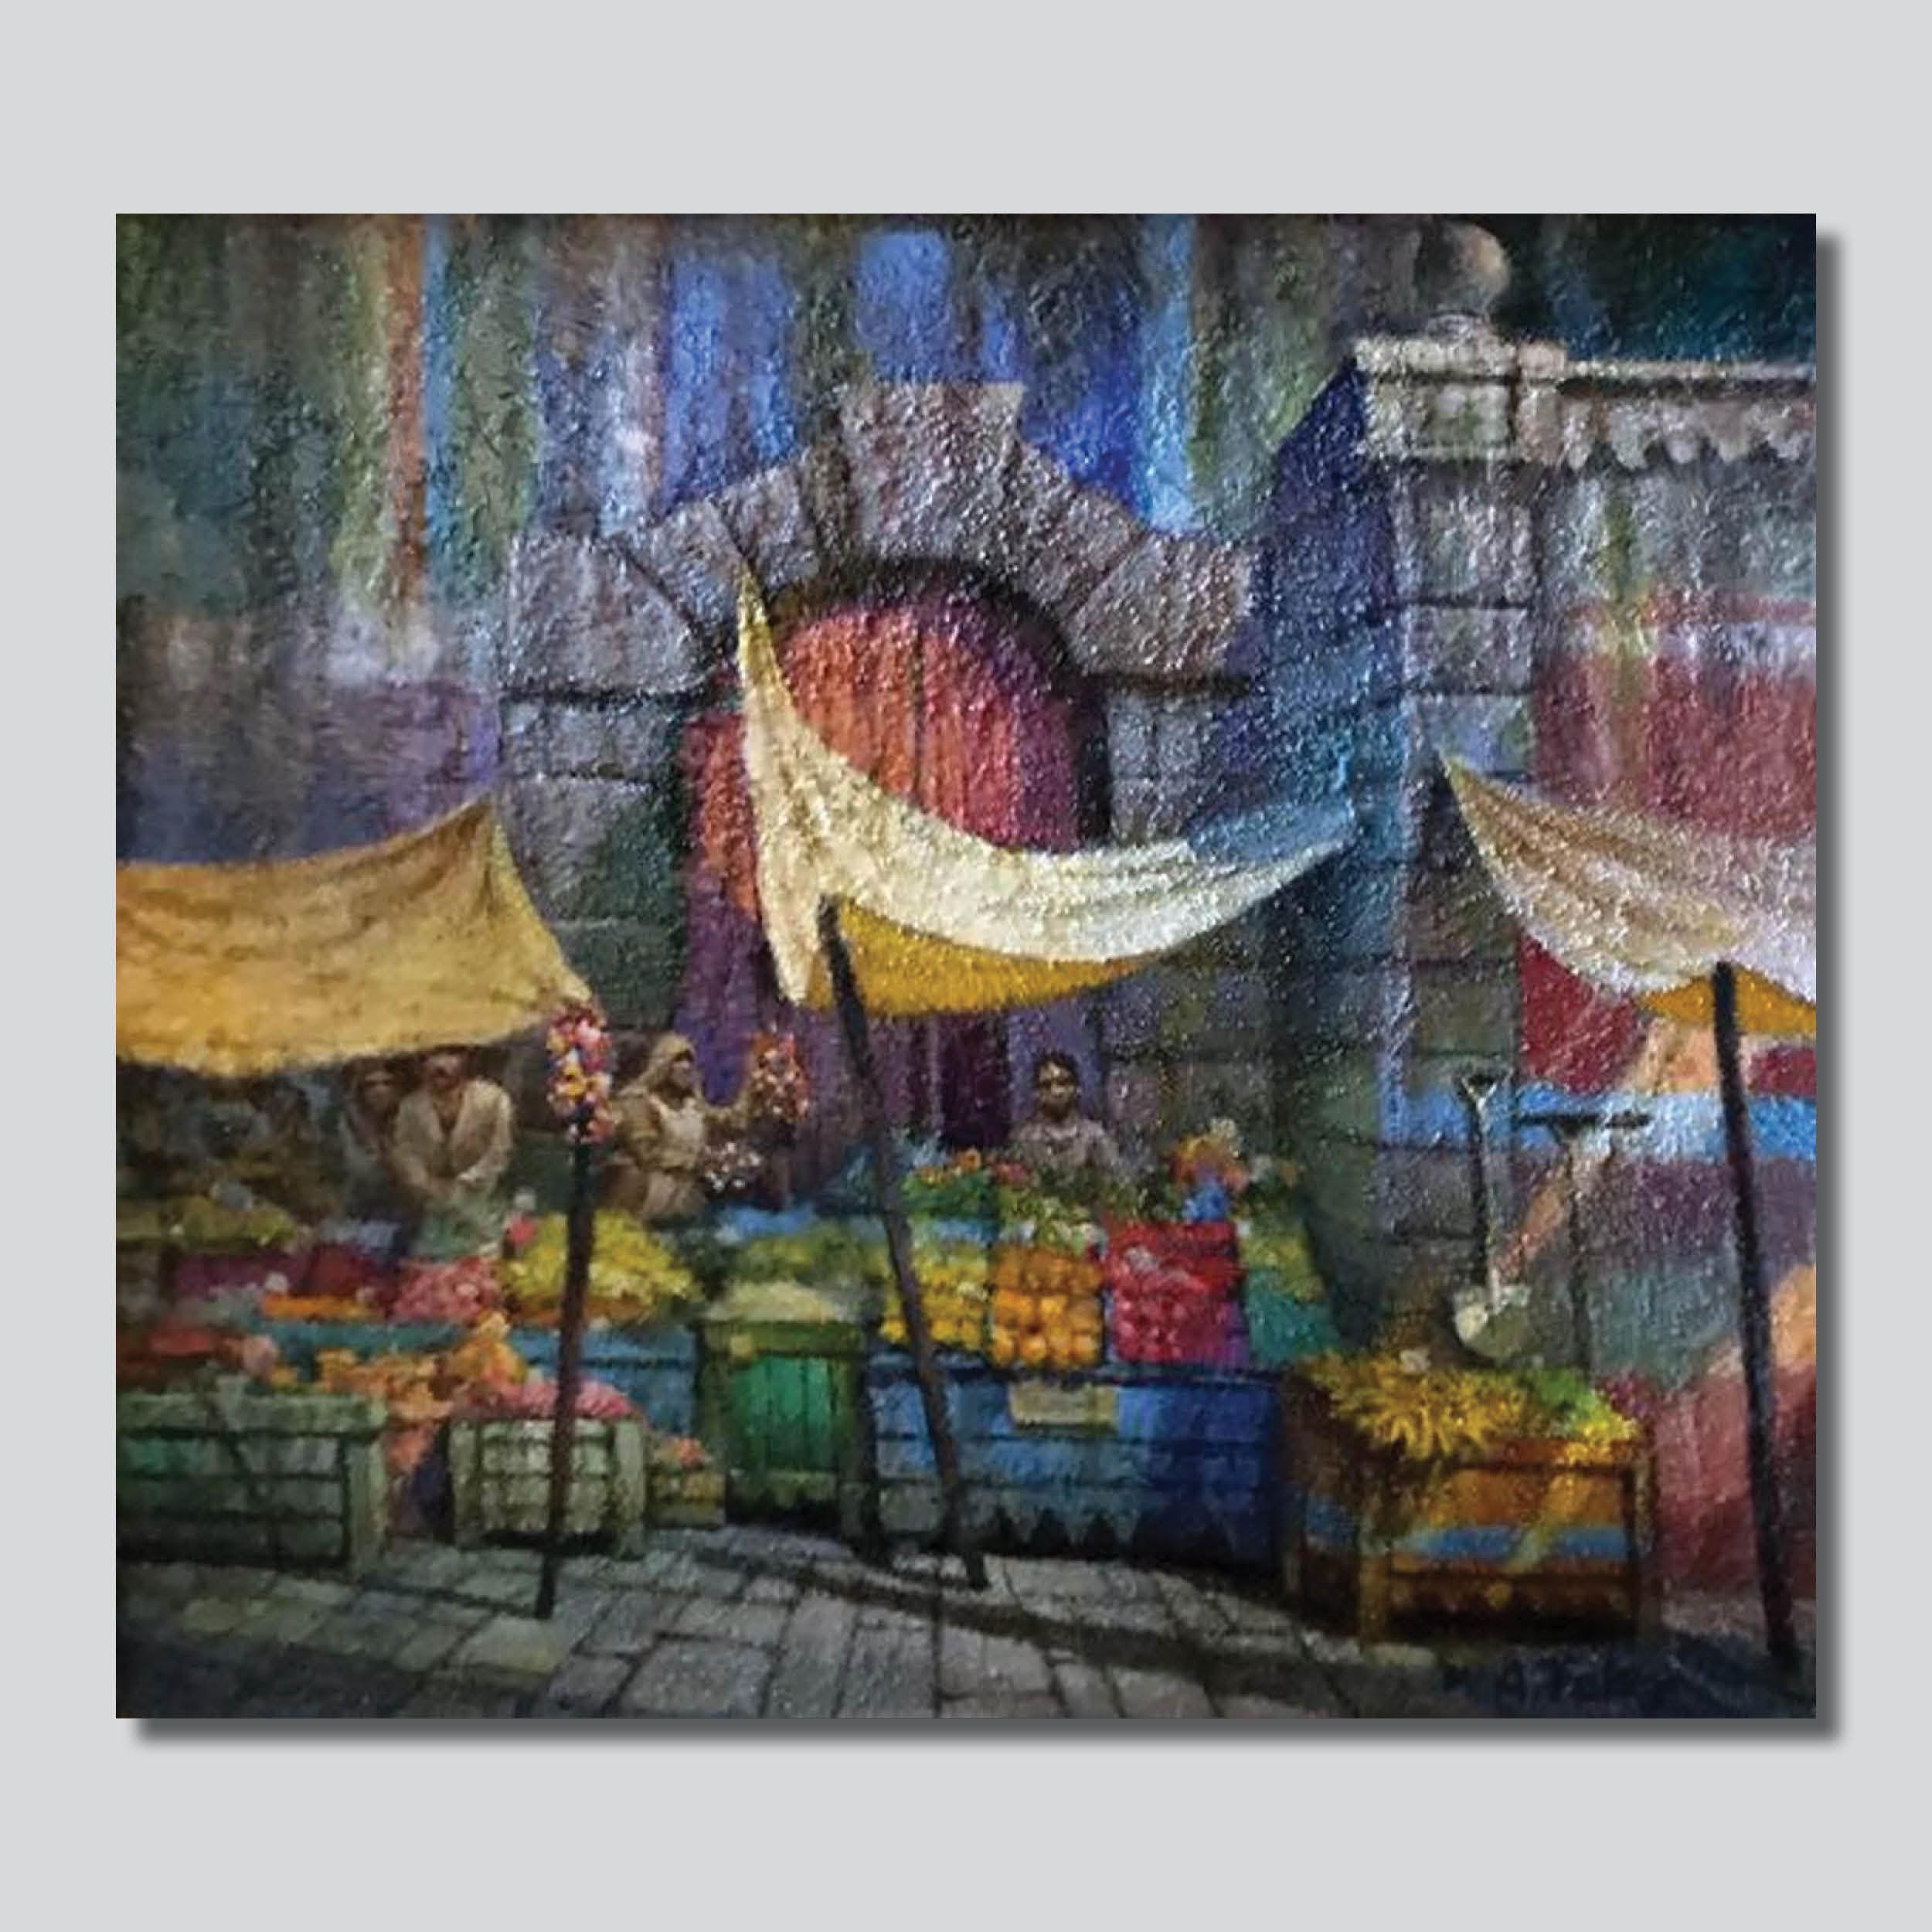 """Original Art"" Open Air Marketplace 24"" x 20"" Oil On Canvas"